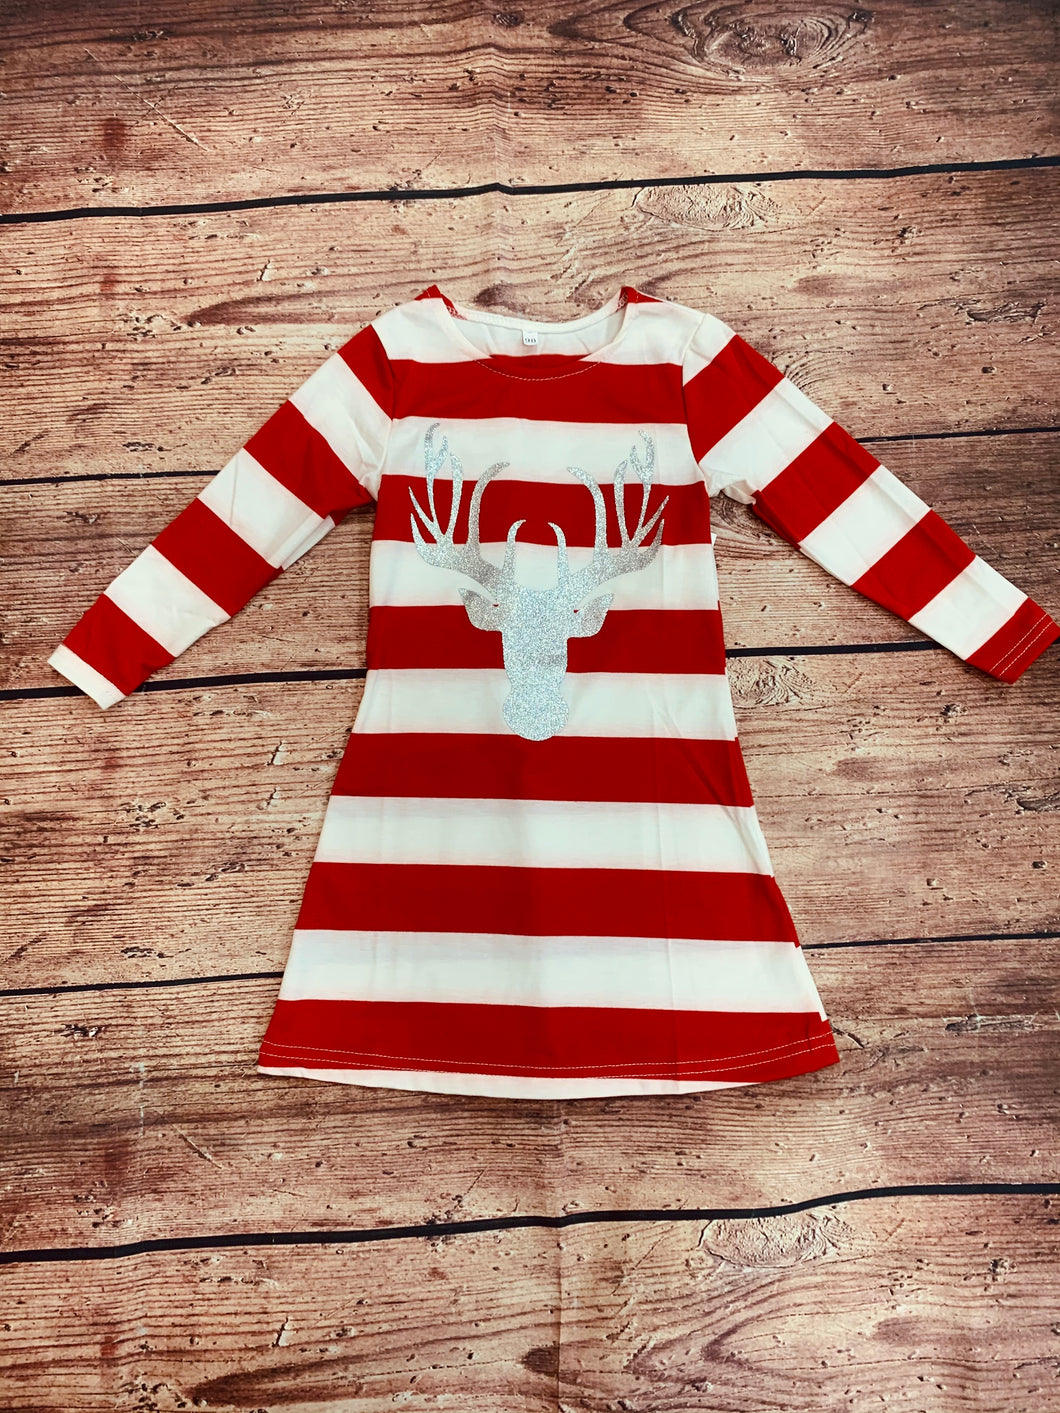 3T, 4T • Striped Reindeer Tunic Dress